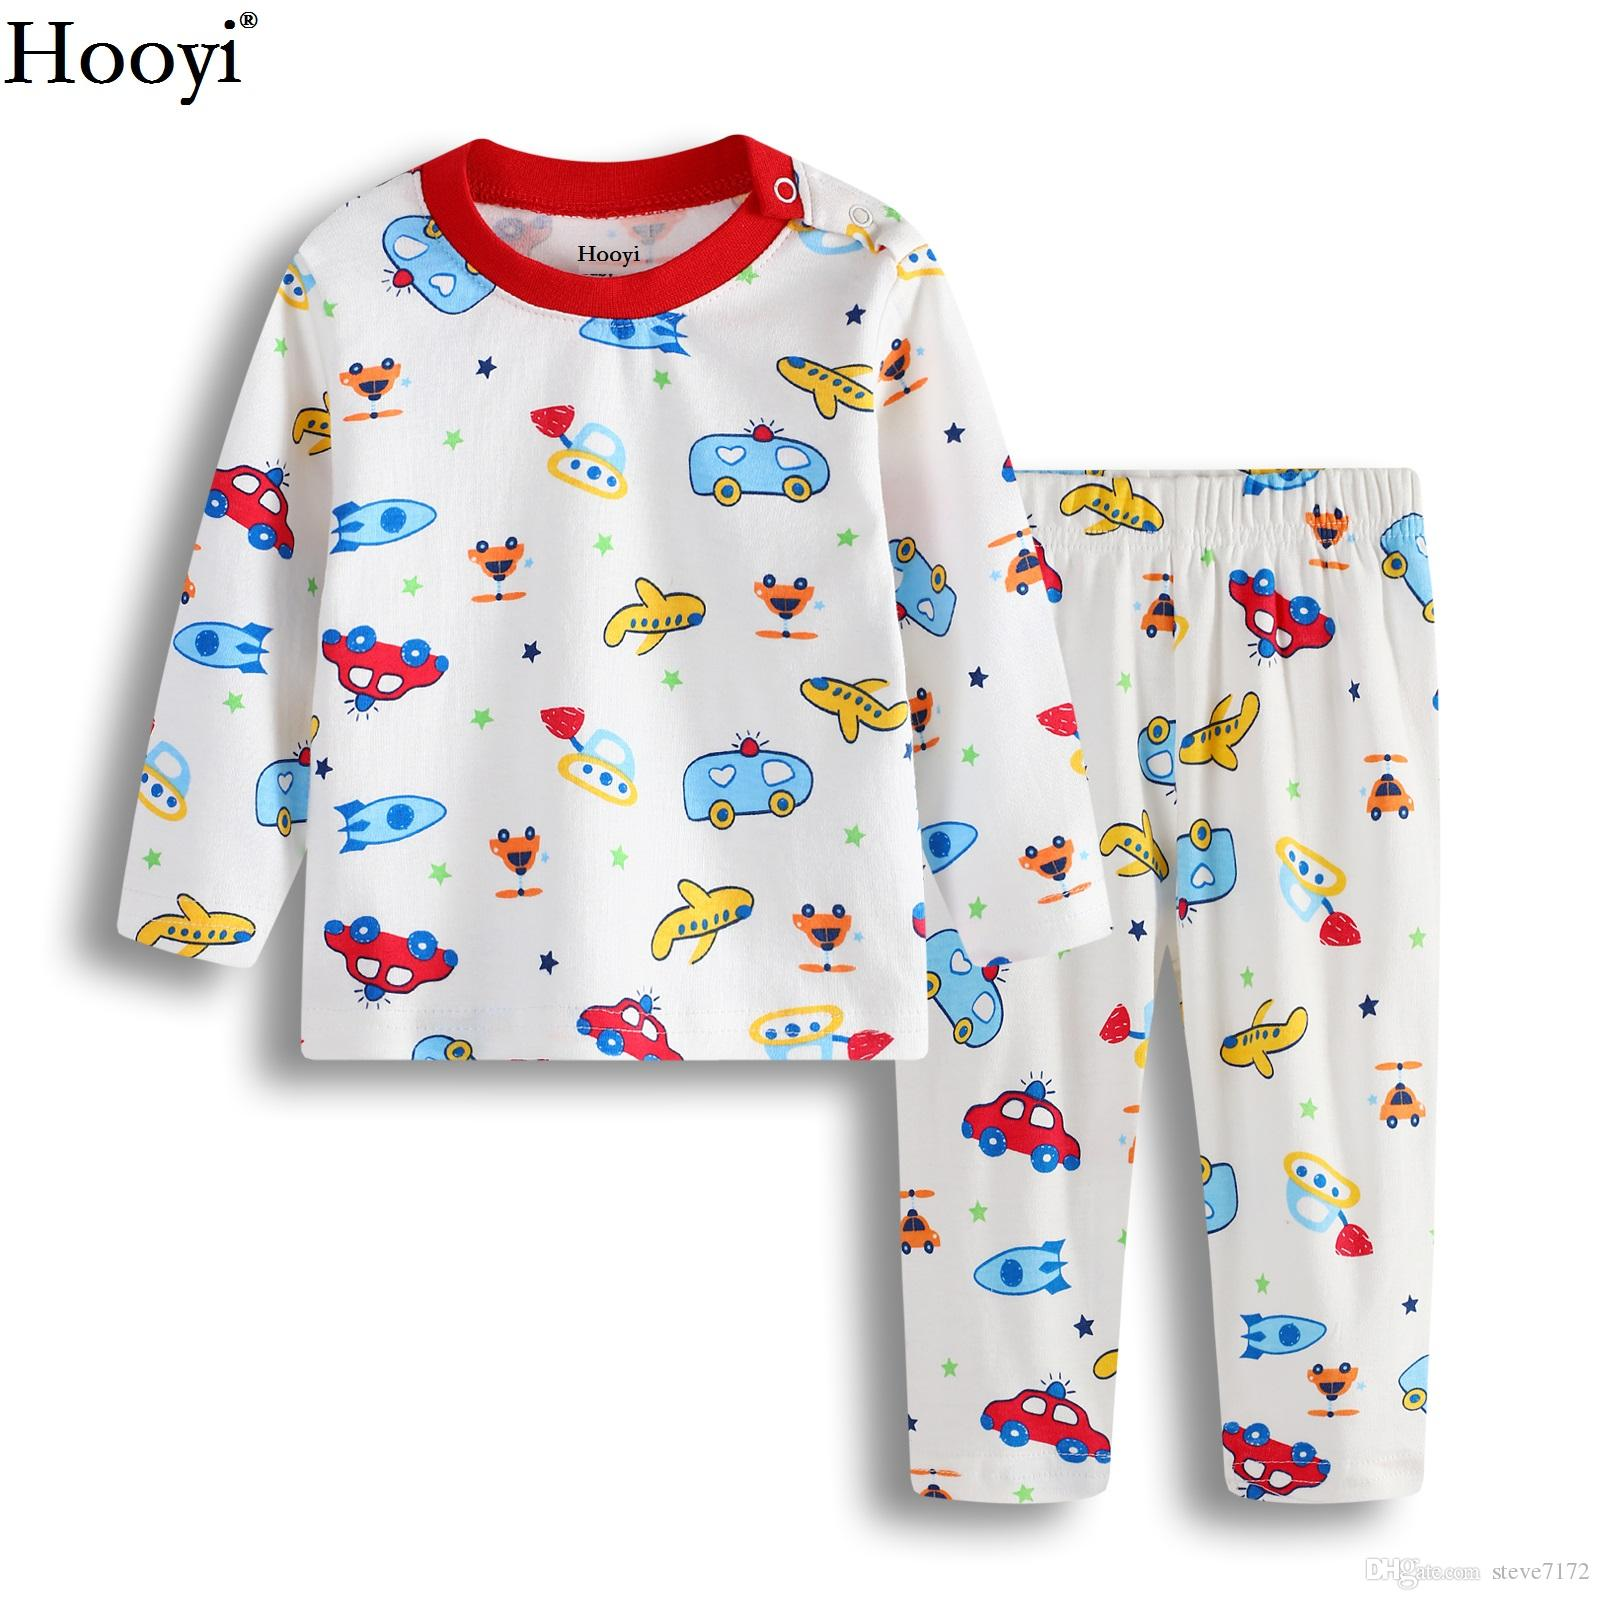 Hooyi Fashion Baby Boys Pajamas Clothes Set Newborn Jumpsuist Baby